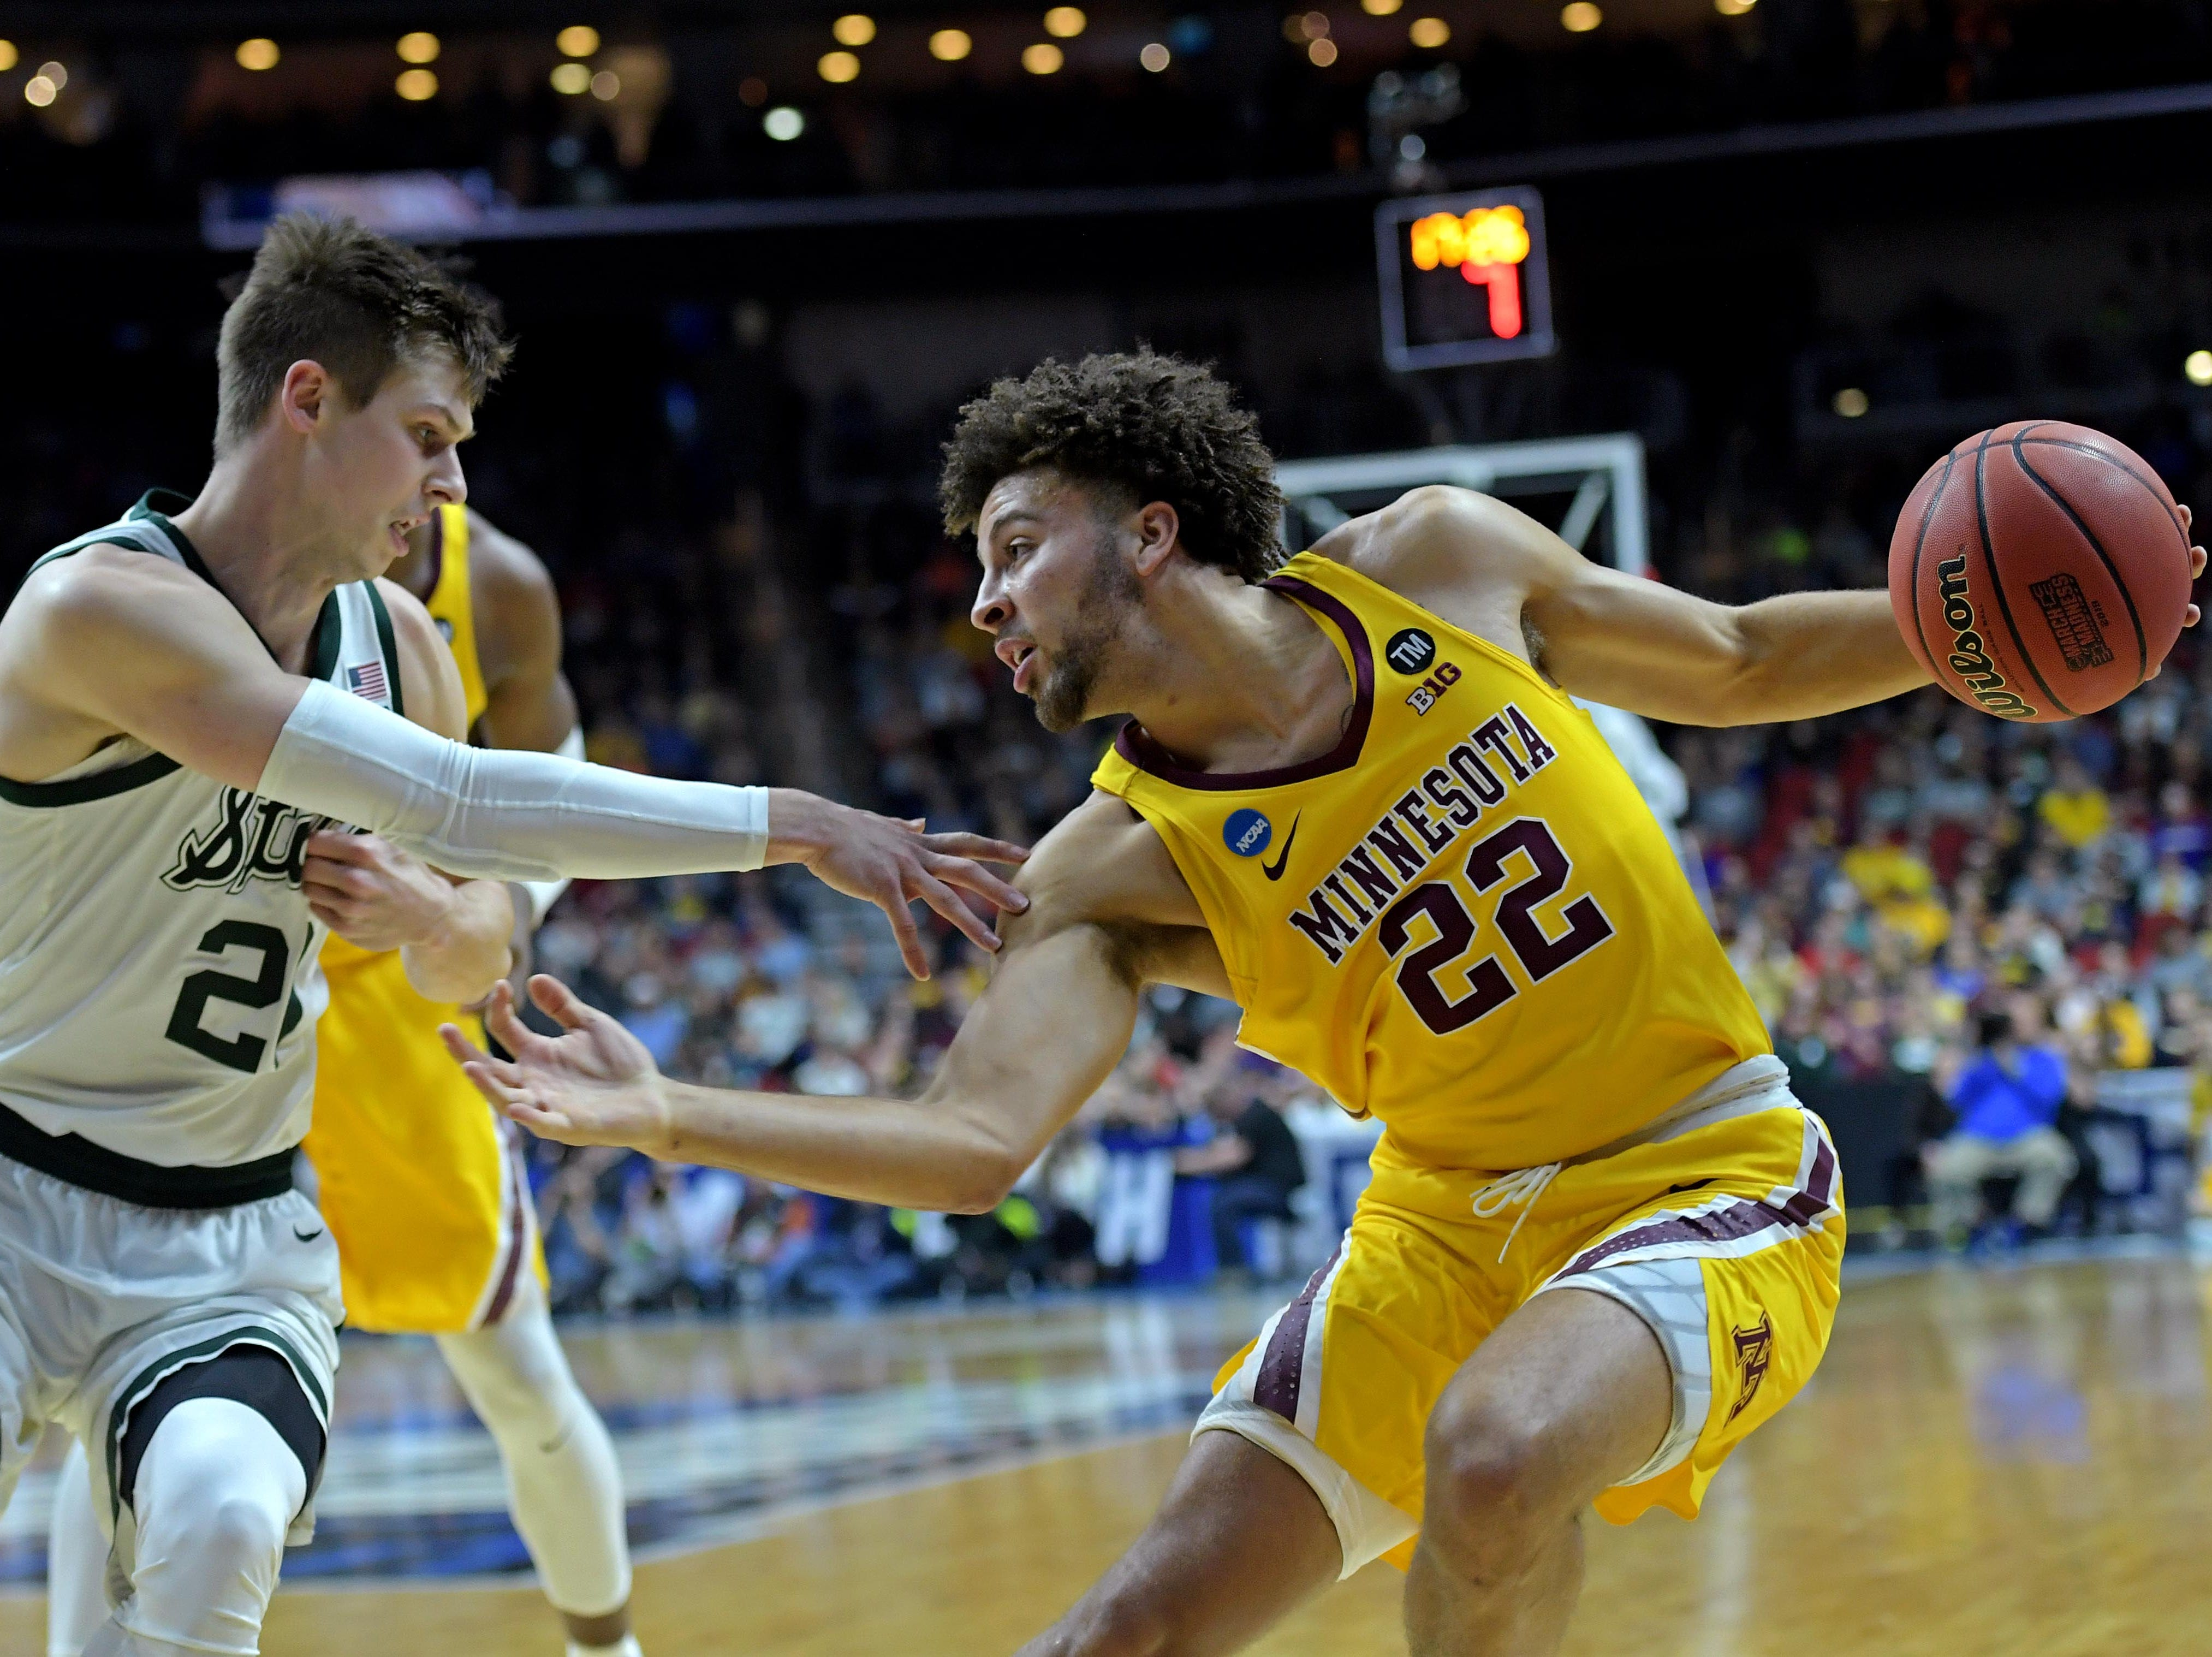 Mar 23, 2019; Des Moines, IA, United States; Minnesota Golden Gophers guard Gabe Kalscheur (22) drives to the basket against Michigan State Spartans guard Matt McQuaid (20) during the first half in the second round of the 2019 NCAA Tournament at Wells Fargo Arena. Mandatory Credit: Steven Branscombe-USA TODAY Sports